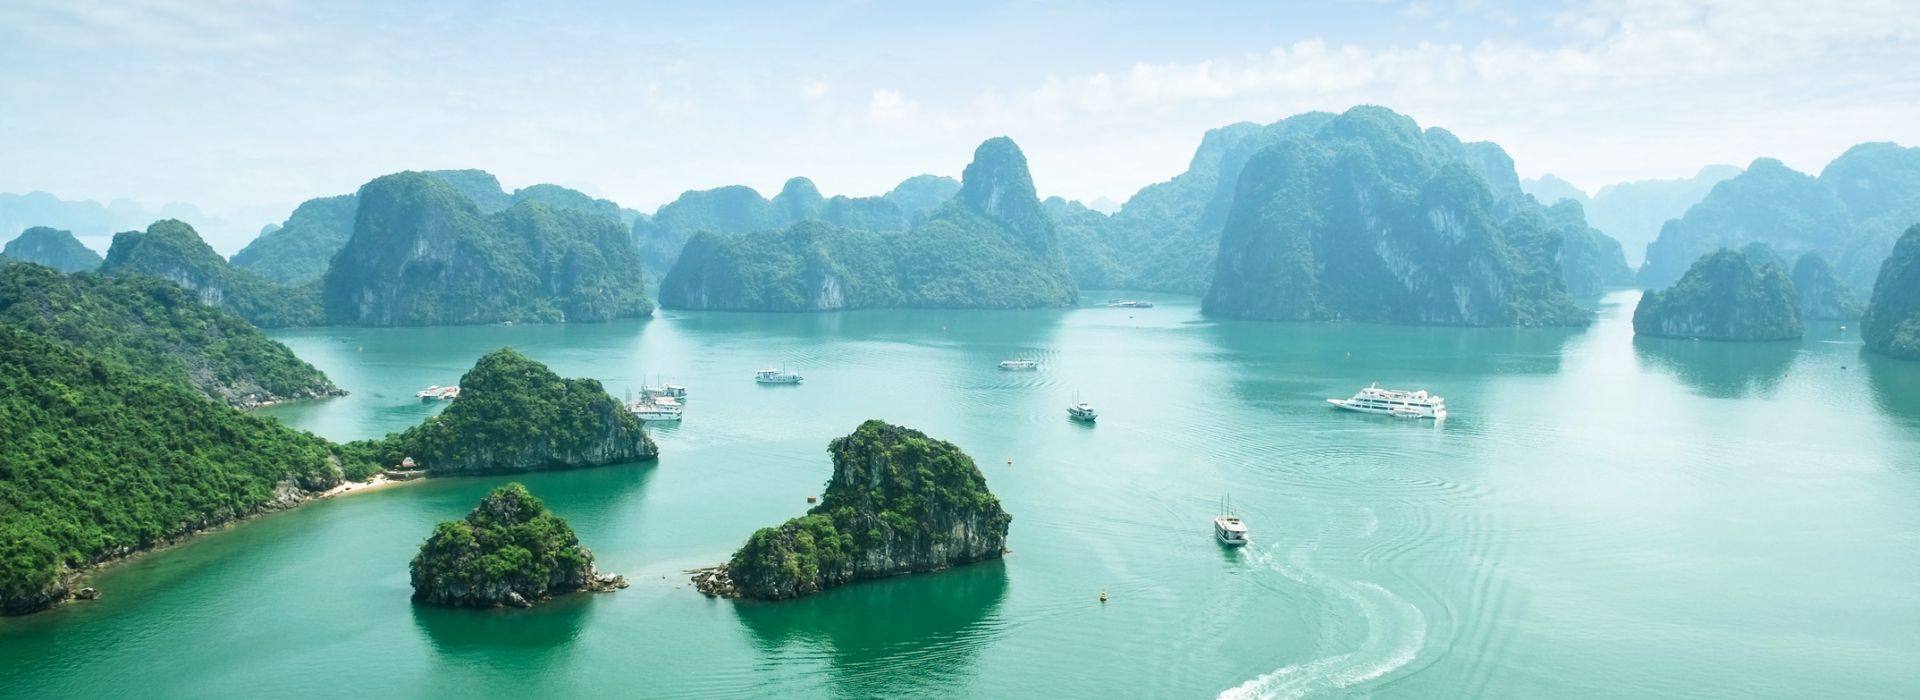 Travelling Vietnam - Tours and Holiday Packages in Vietnam